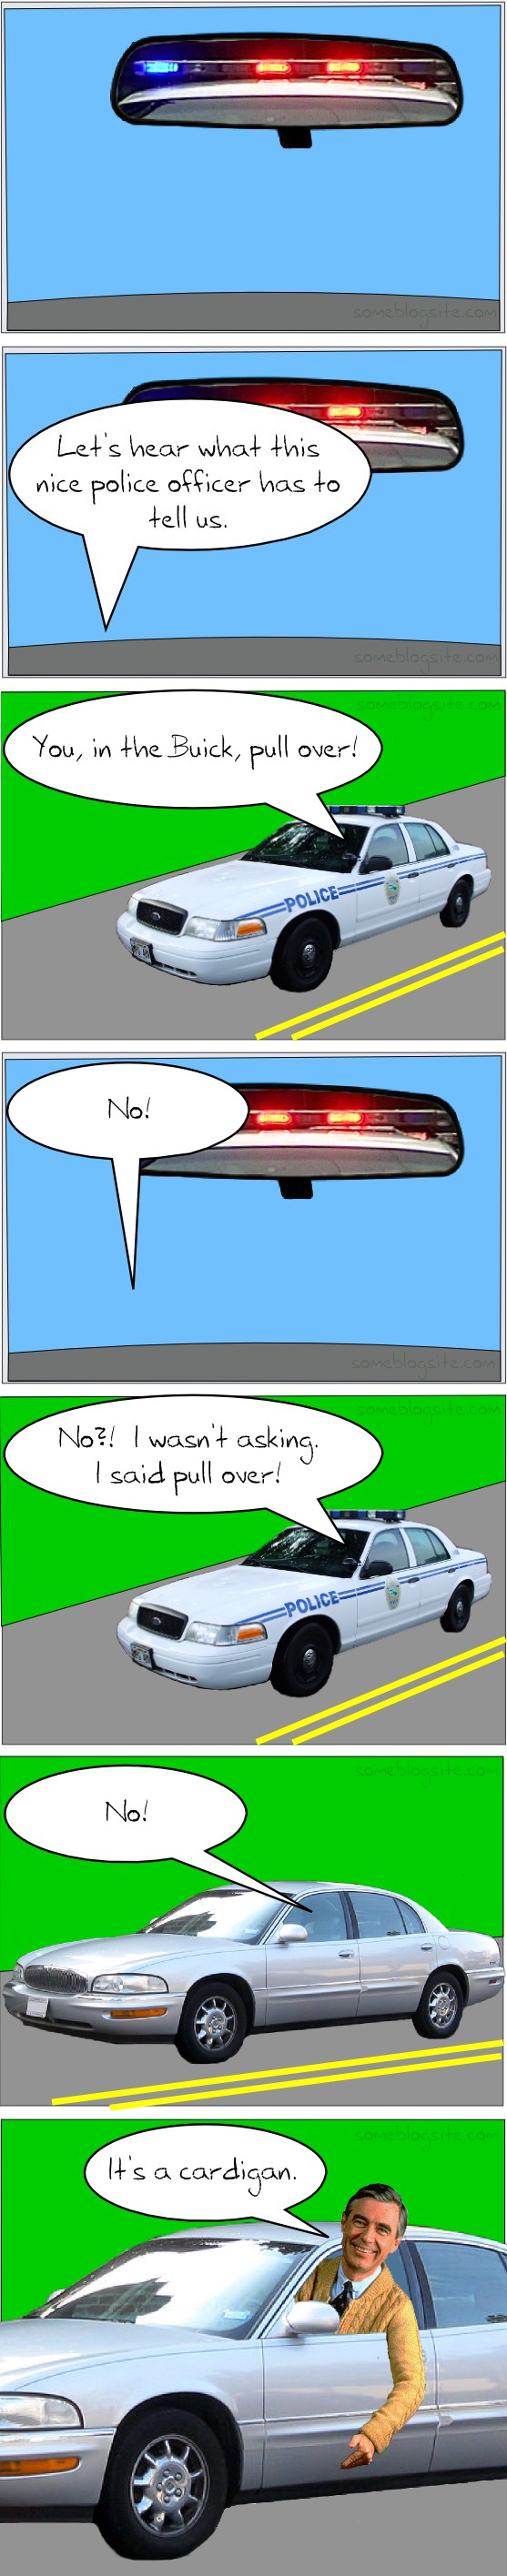 comic of a police officer trying to pull over Mr. Rogers